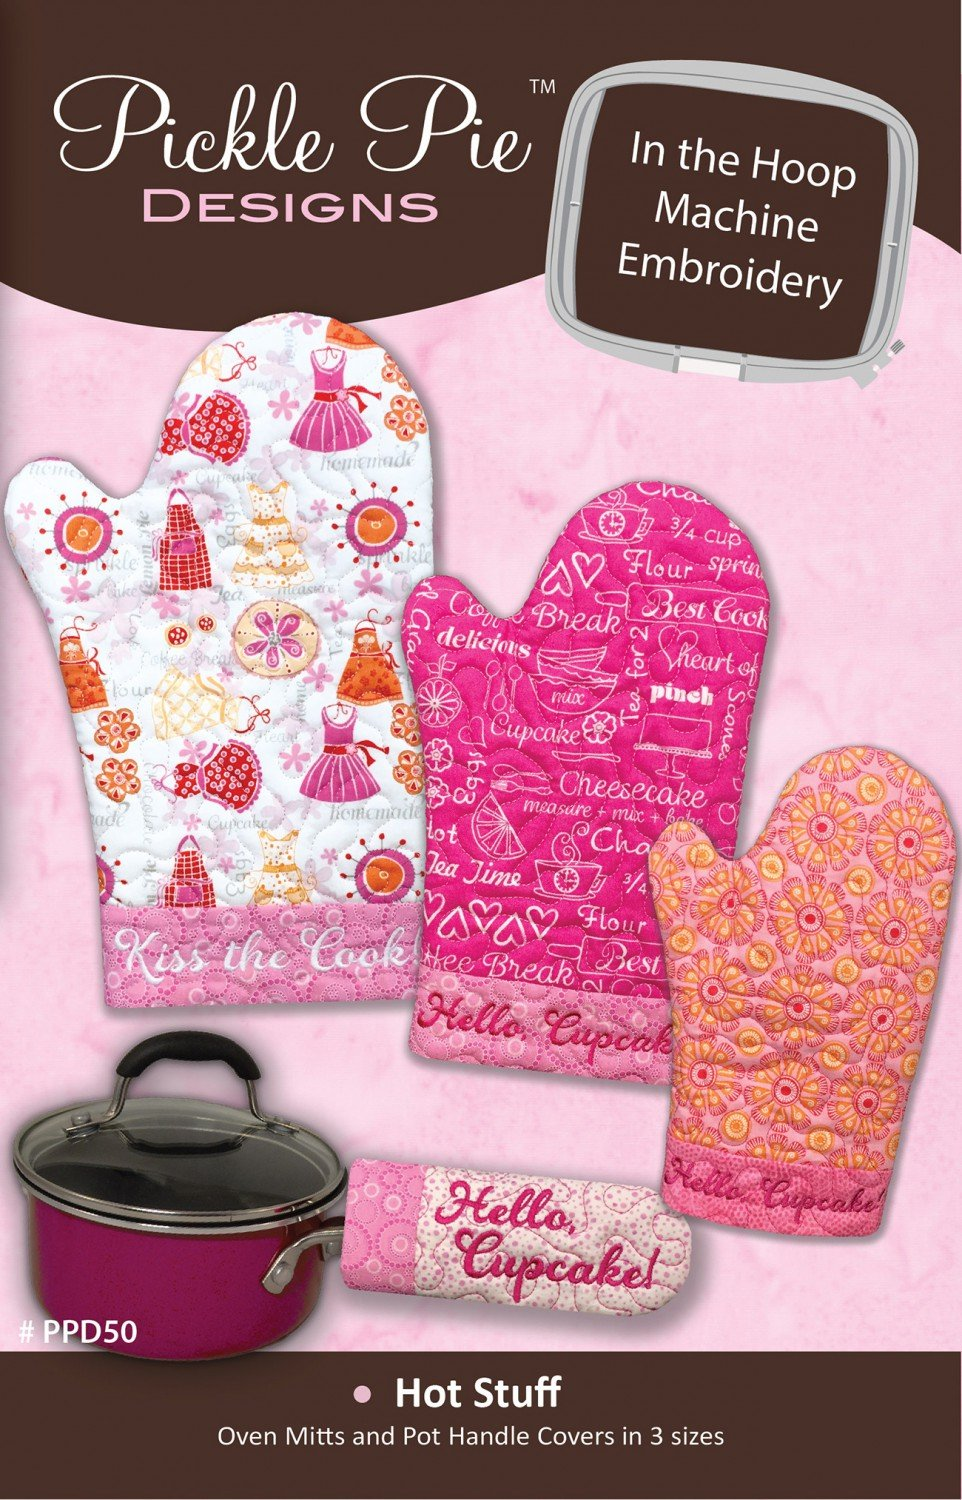 Hot Stuff Oven Mitts CD Pickle Pie In The Hoop Embroidery